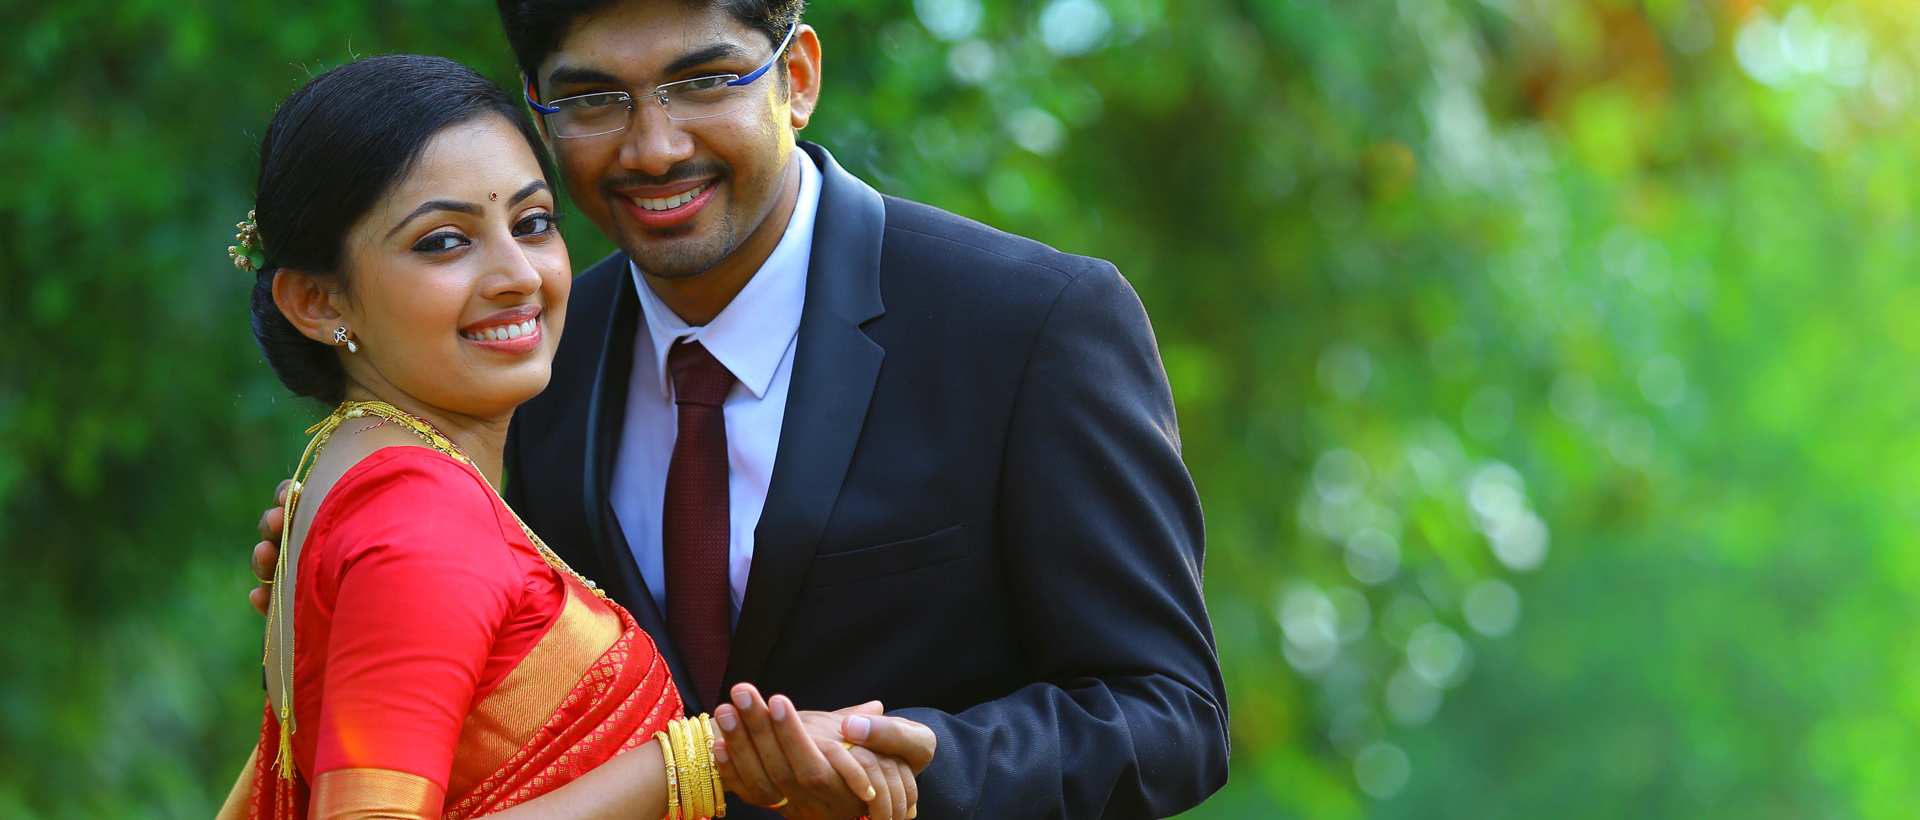 Latin Matrimonial Kerala Catholic Christian Matrimony Network By